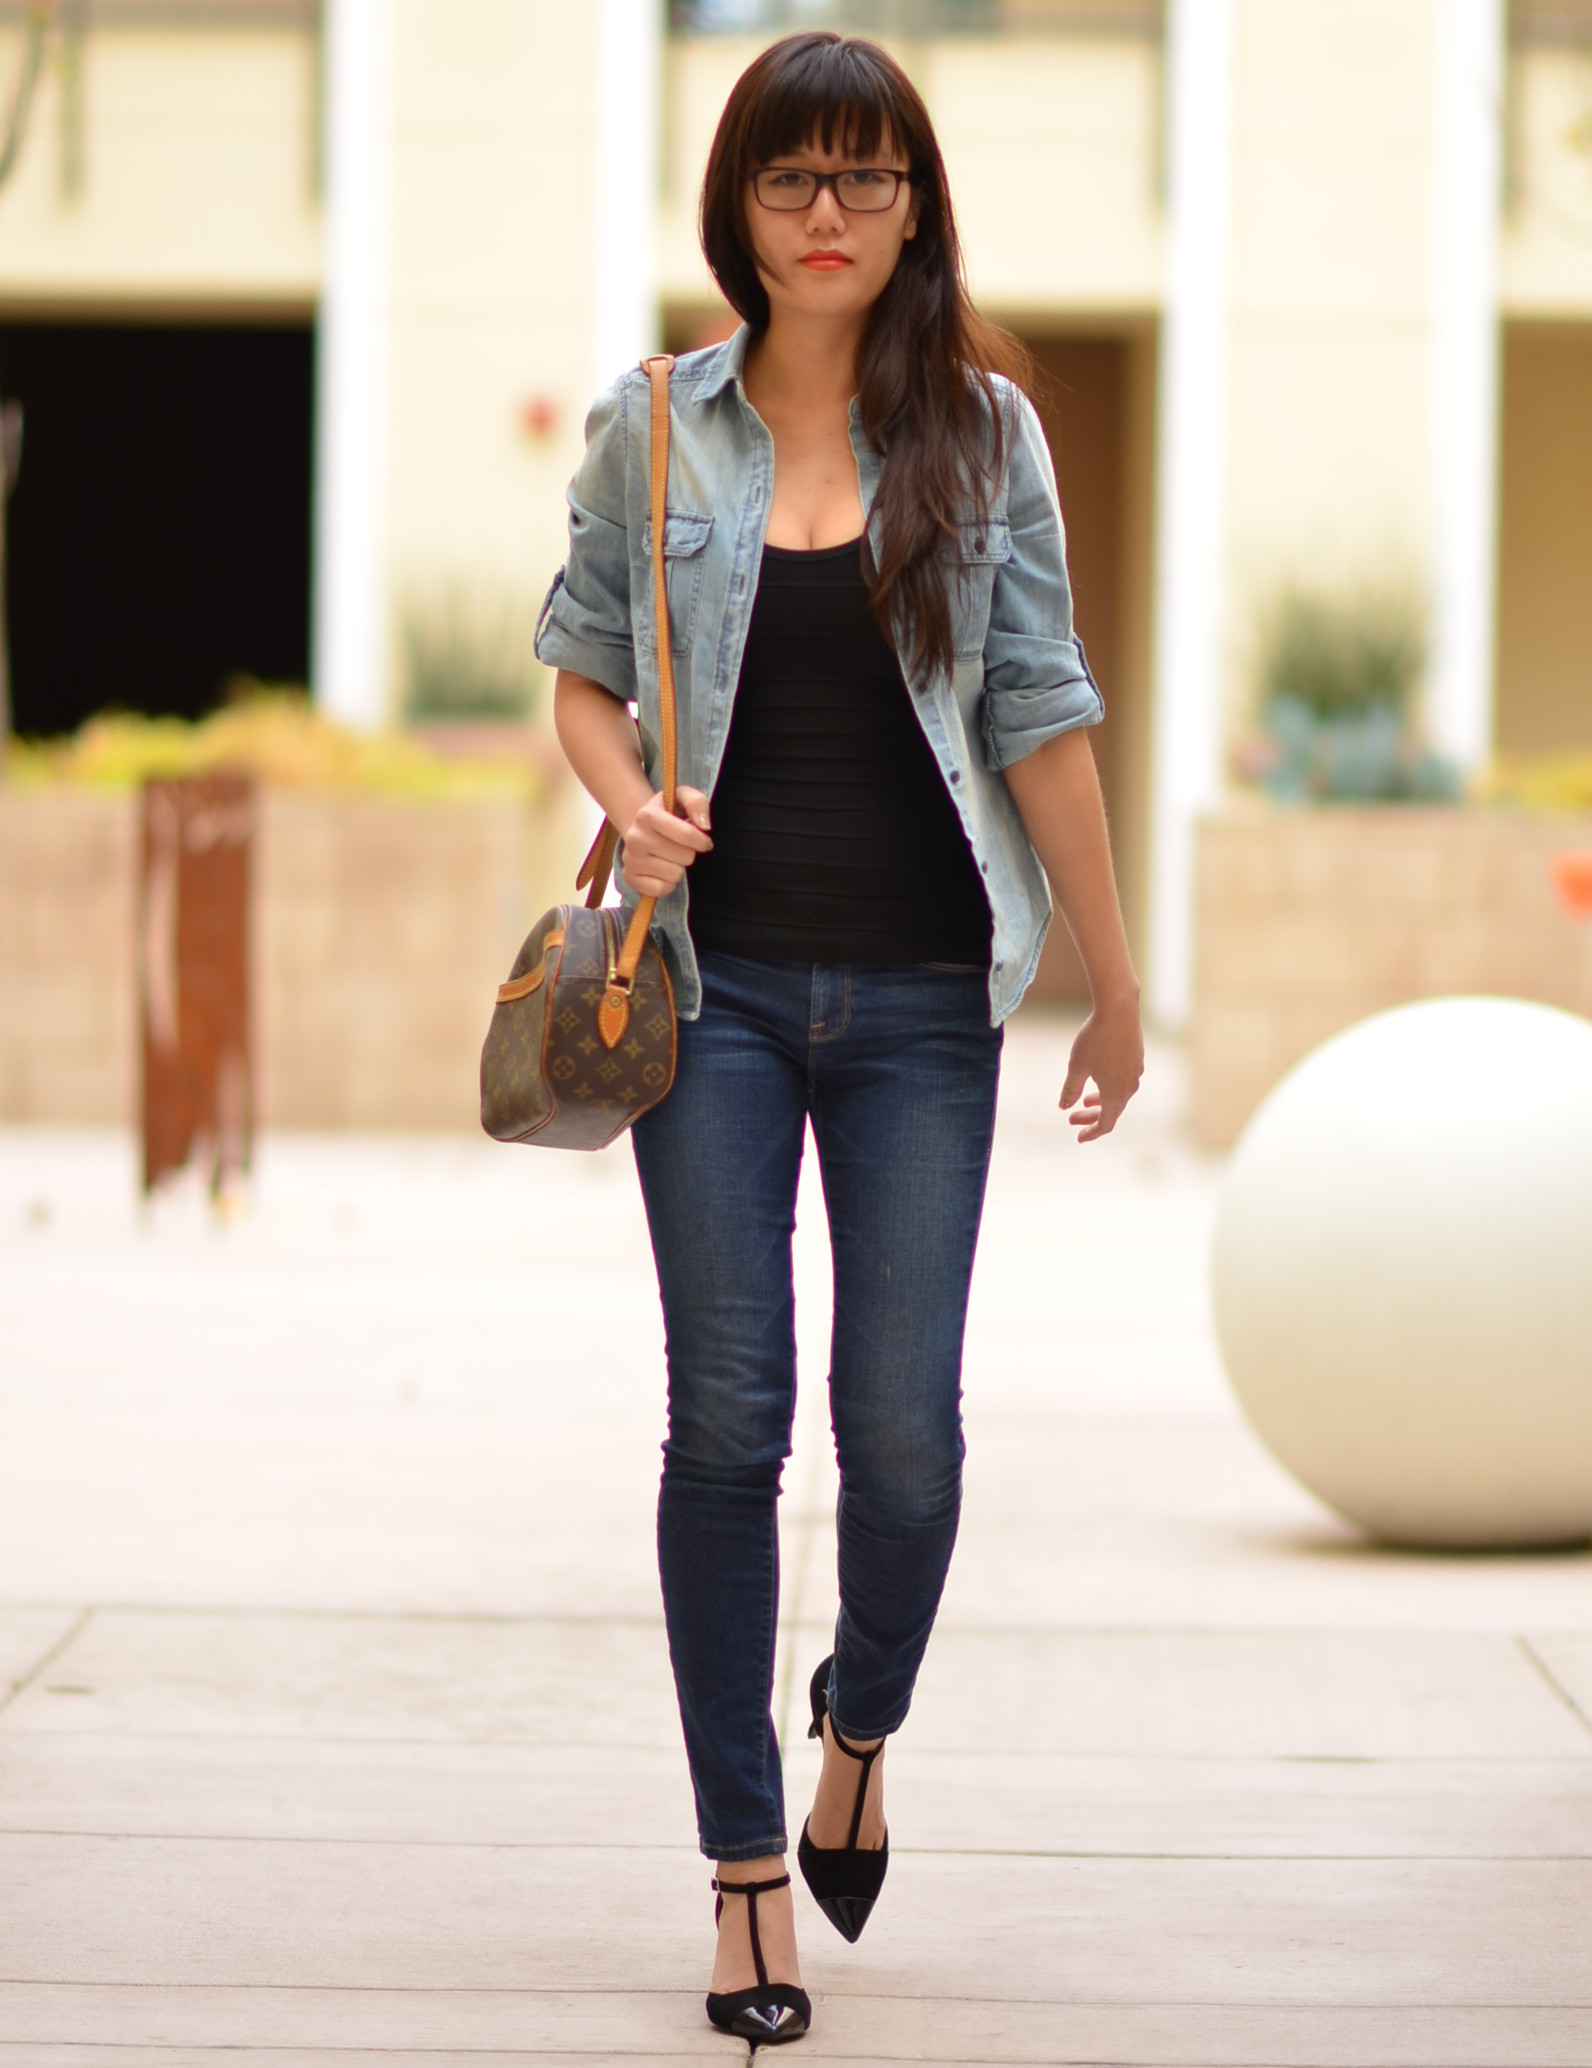 top to bottom jeans look with heels comfy relaxed outfit